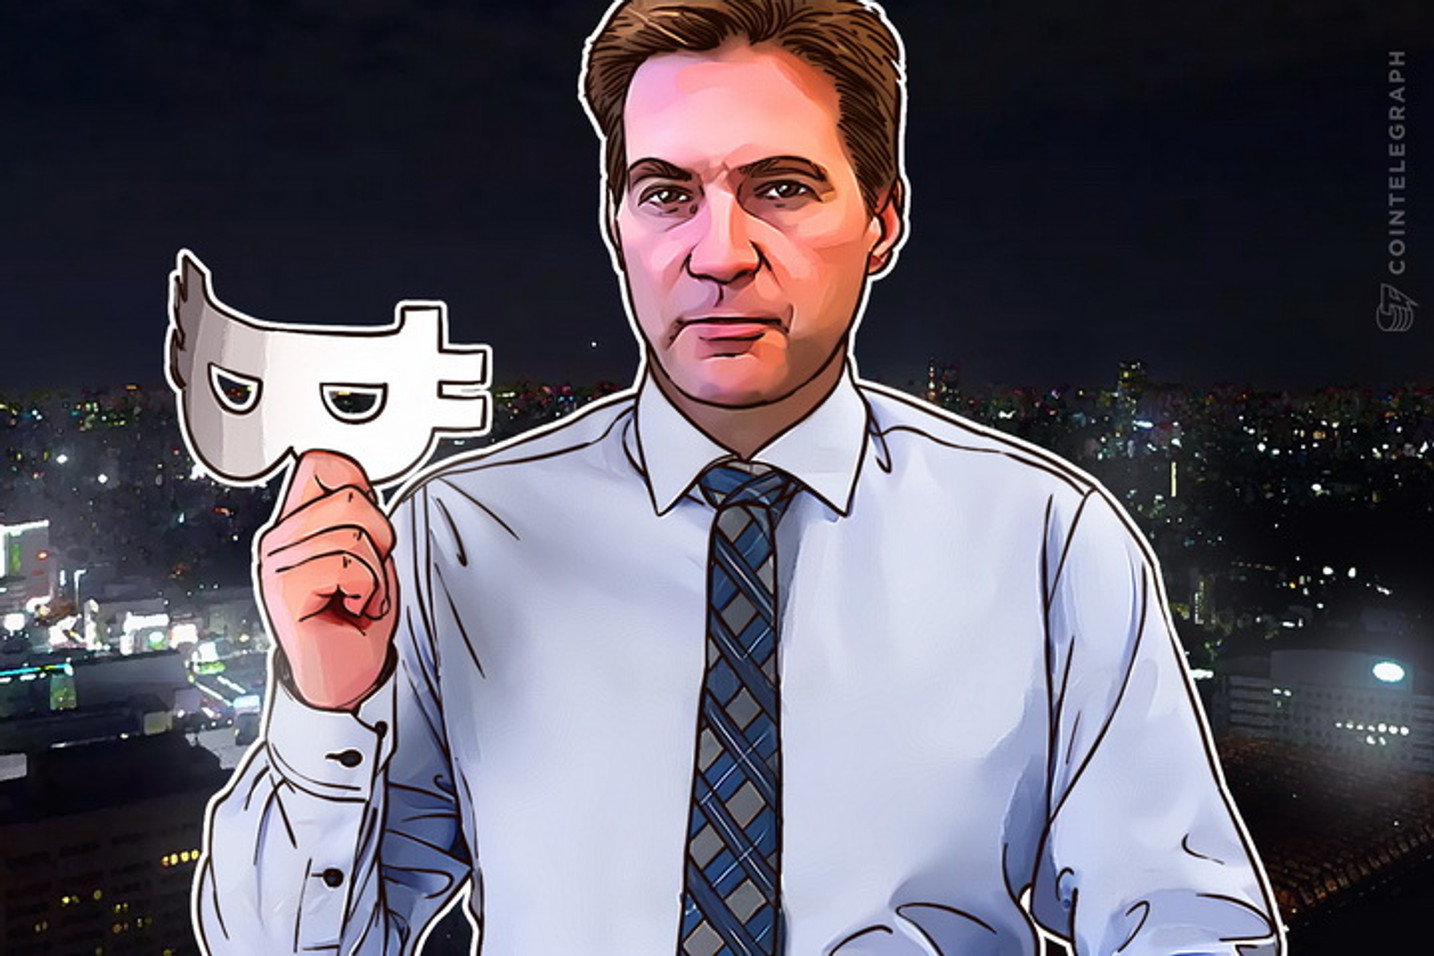 Craig Wright is Not Satoshi Nakamoto, The Myth Lives On